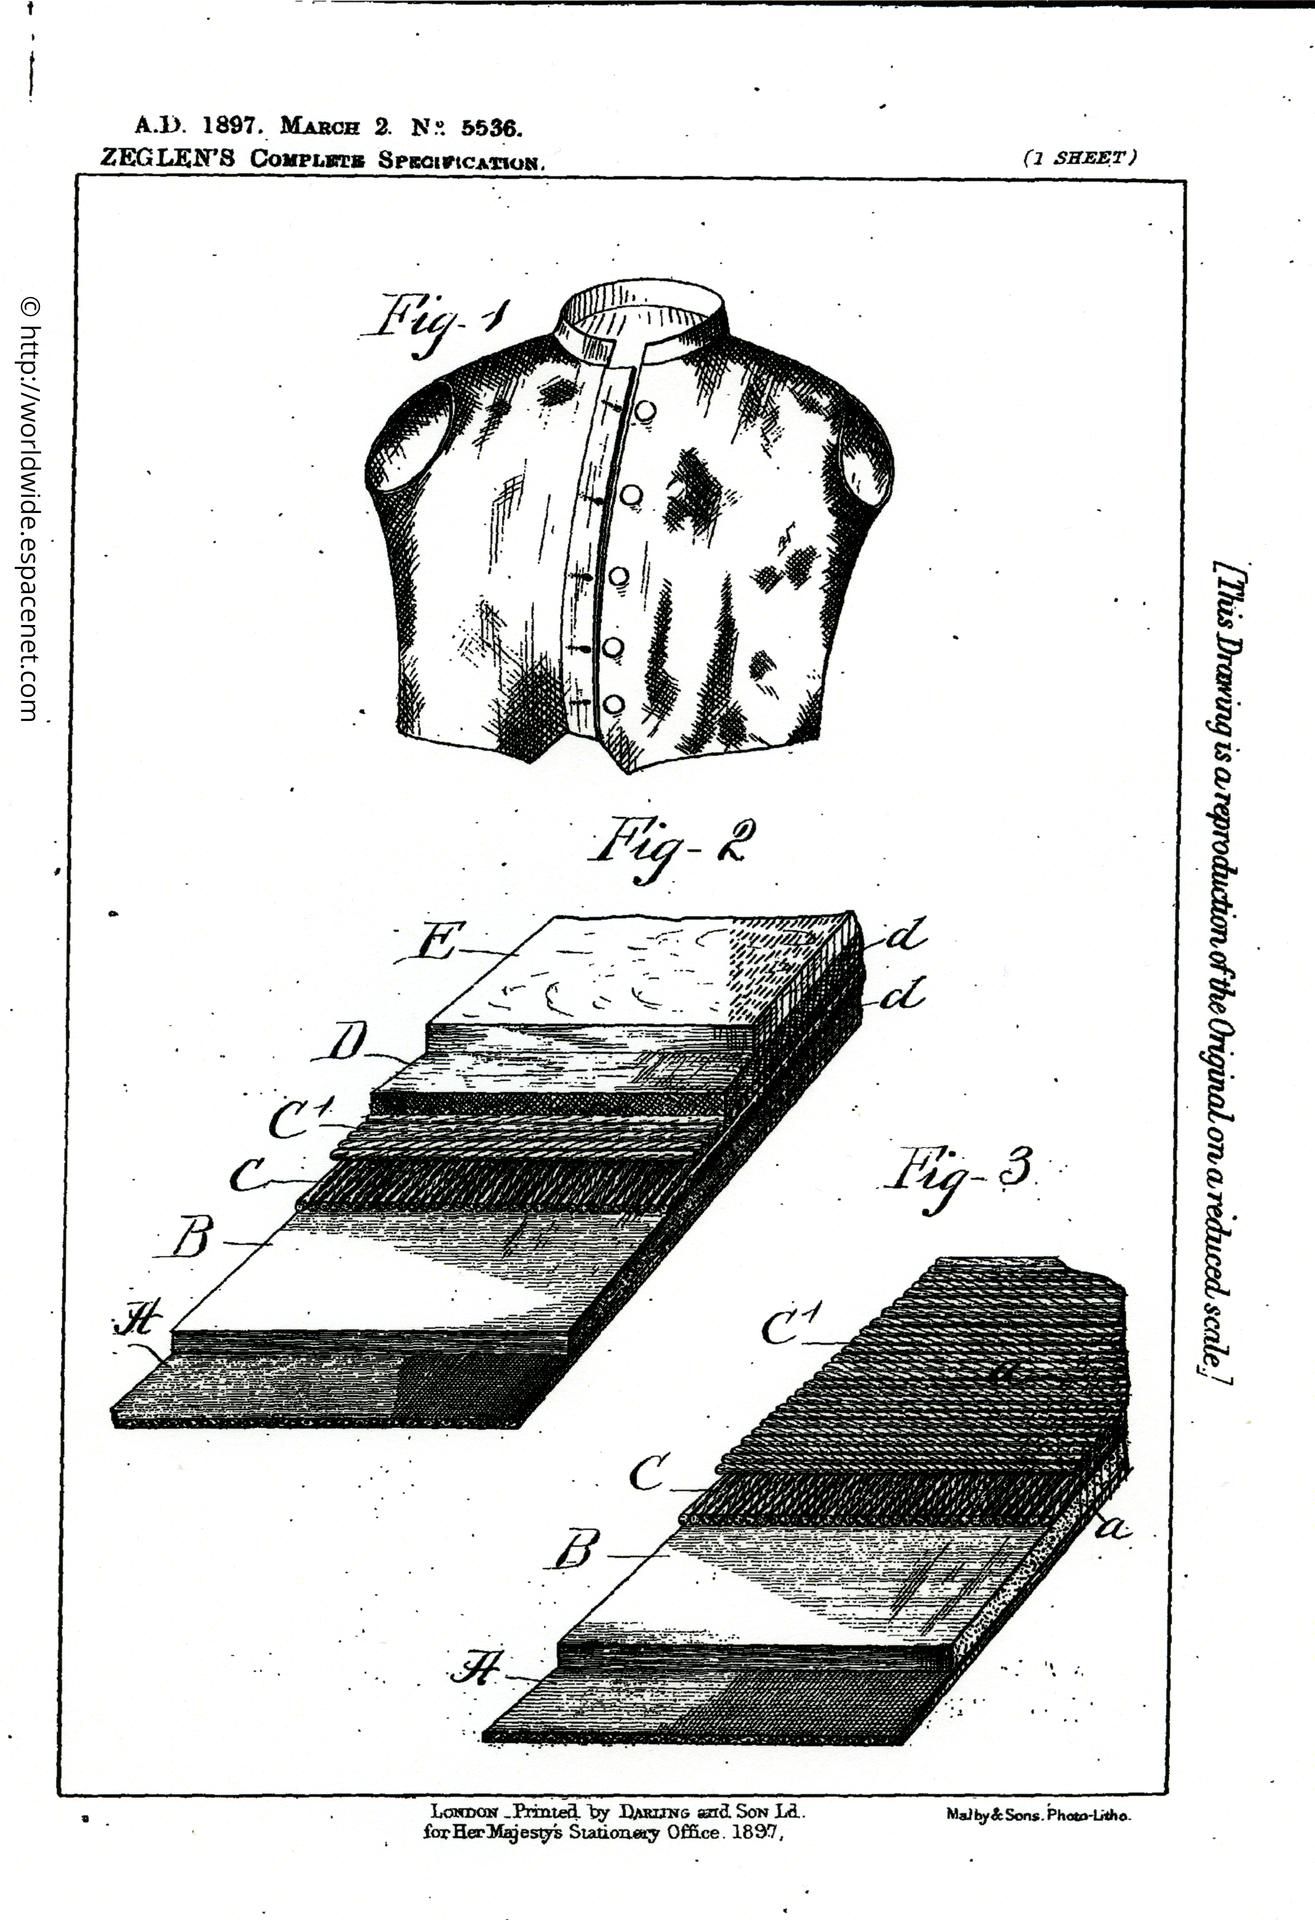 Patent drawing for Casimir Zeglen's silk bullet proof vest, patent No.5536, London, 1897, printed by Darling and Son Ld, for her Majesty's Stationary Office. (http://worldwide.espacenet.com)